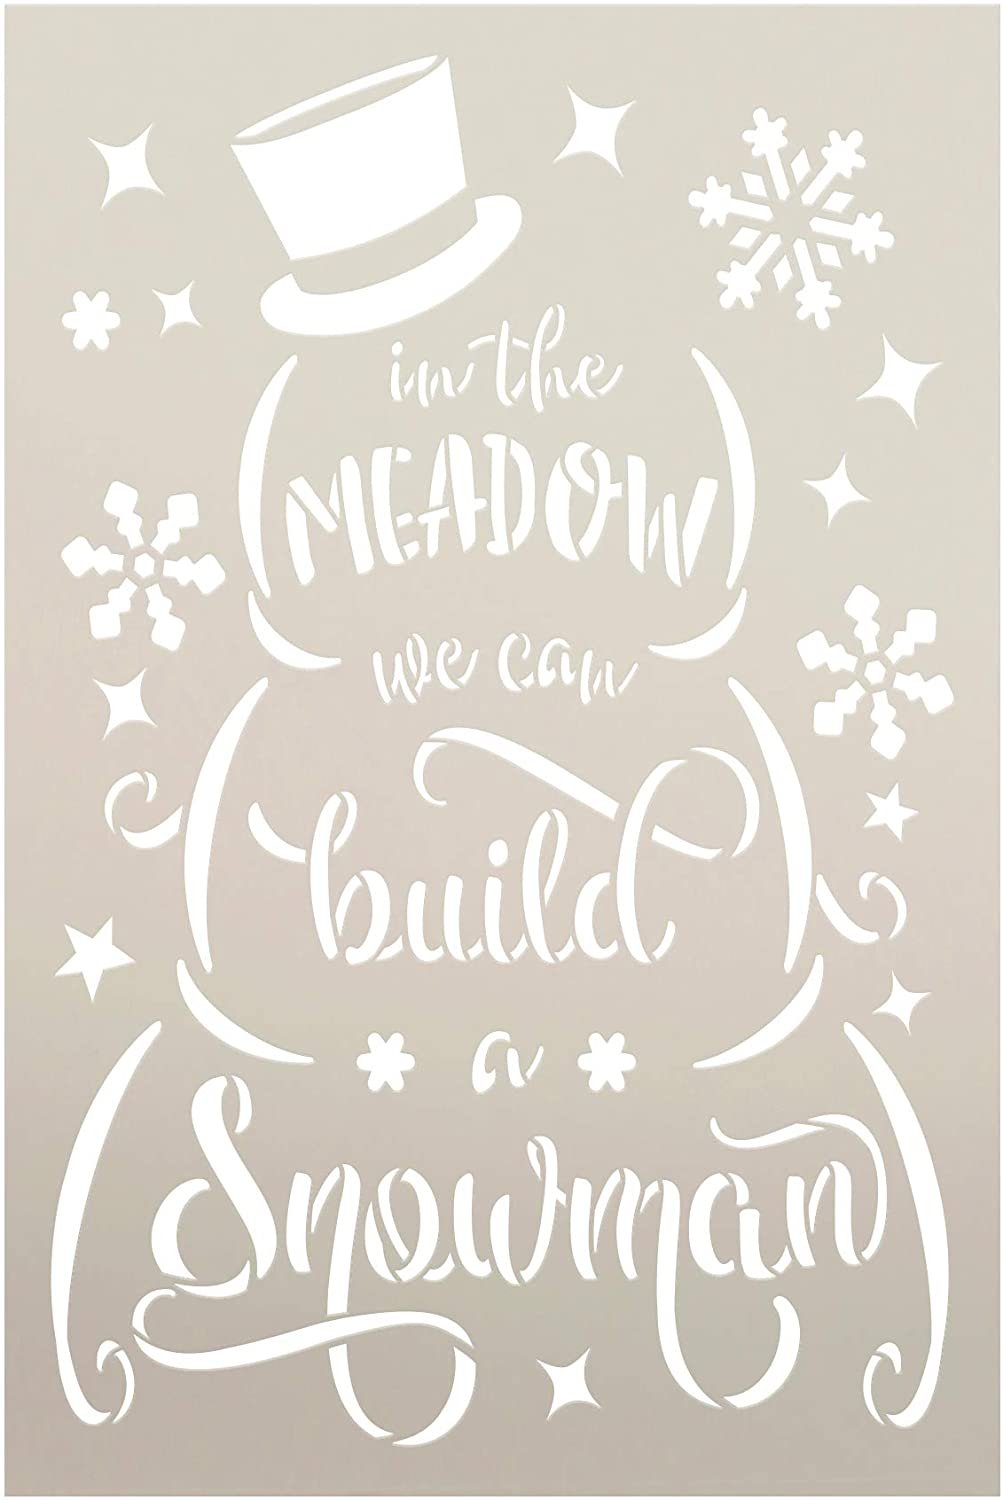 We Can Build a Snowman Stencil by StudioR12 | DIY Christmas Holiday Song Home Decor | Craft & Paint Wood Sign | Reusable Mylar Template | Winter Cursive Script Gift Select Size